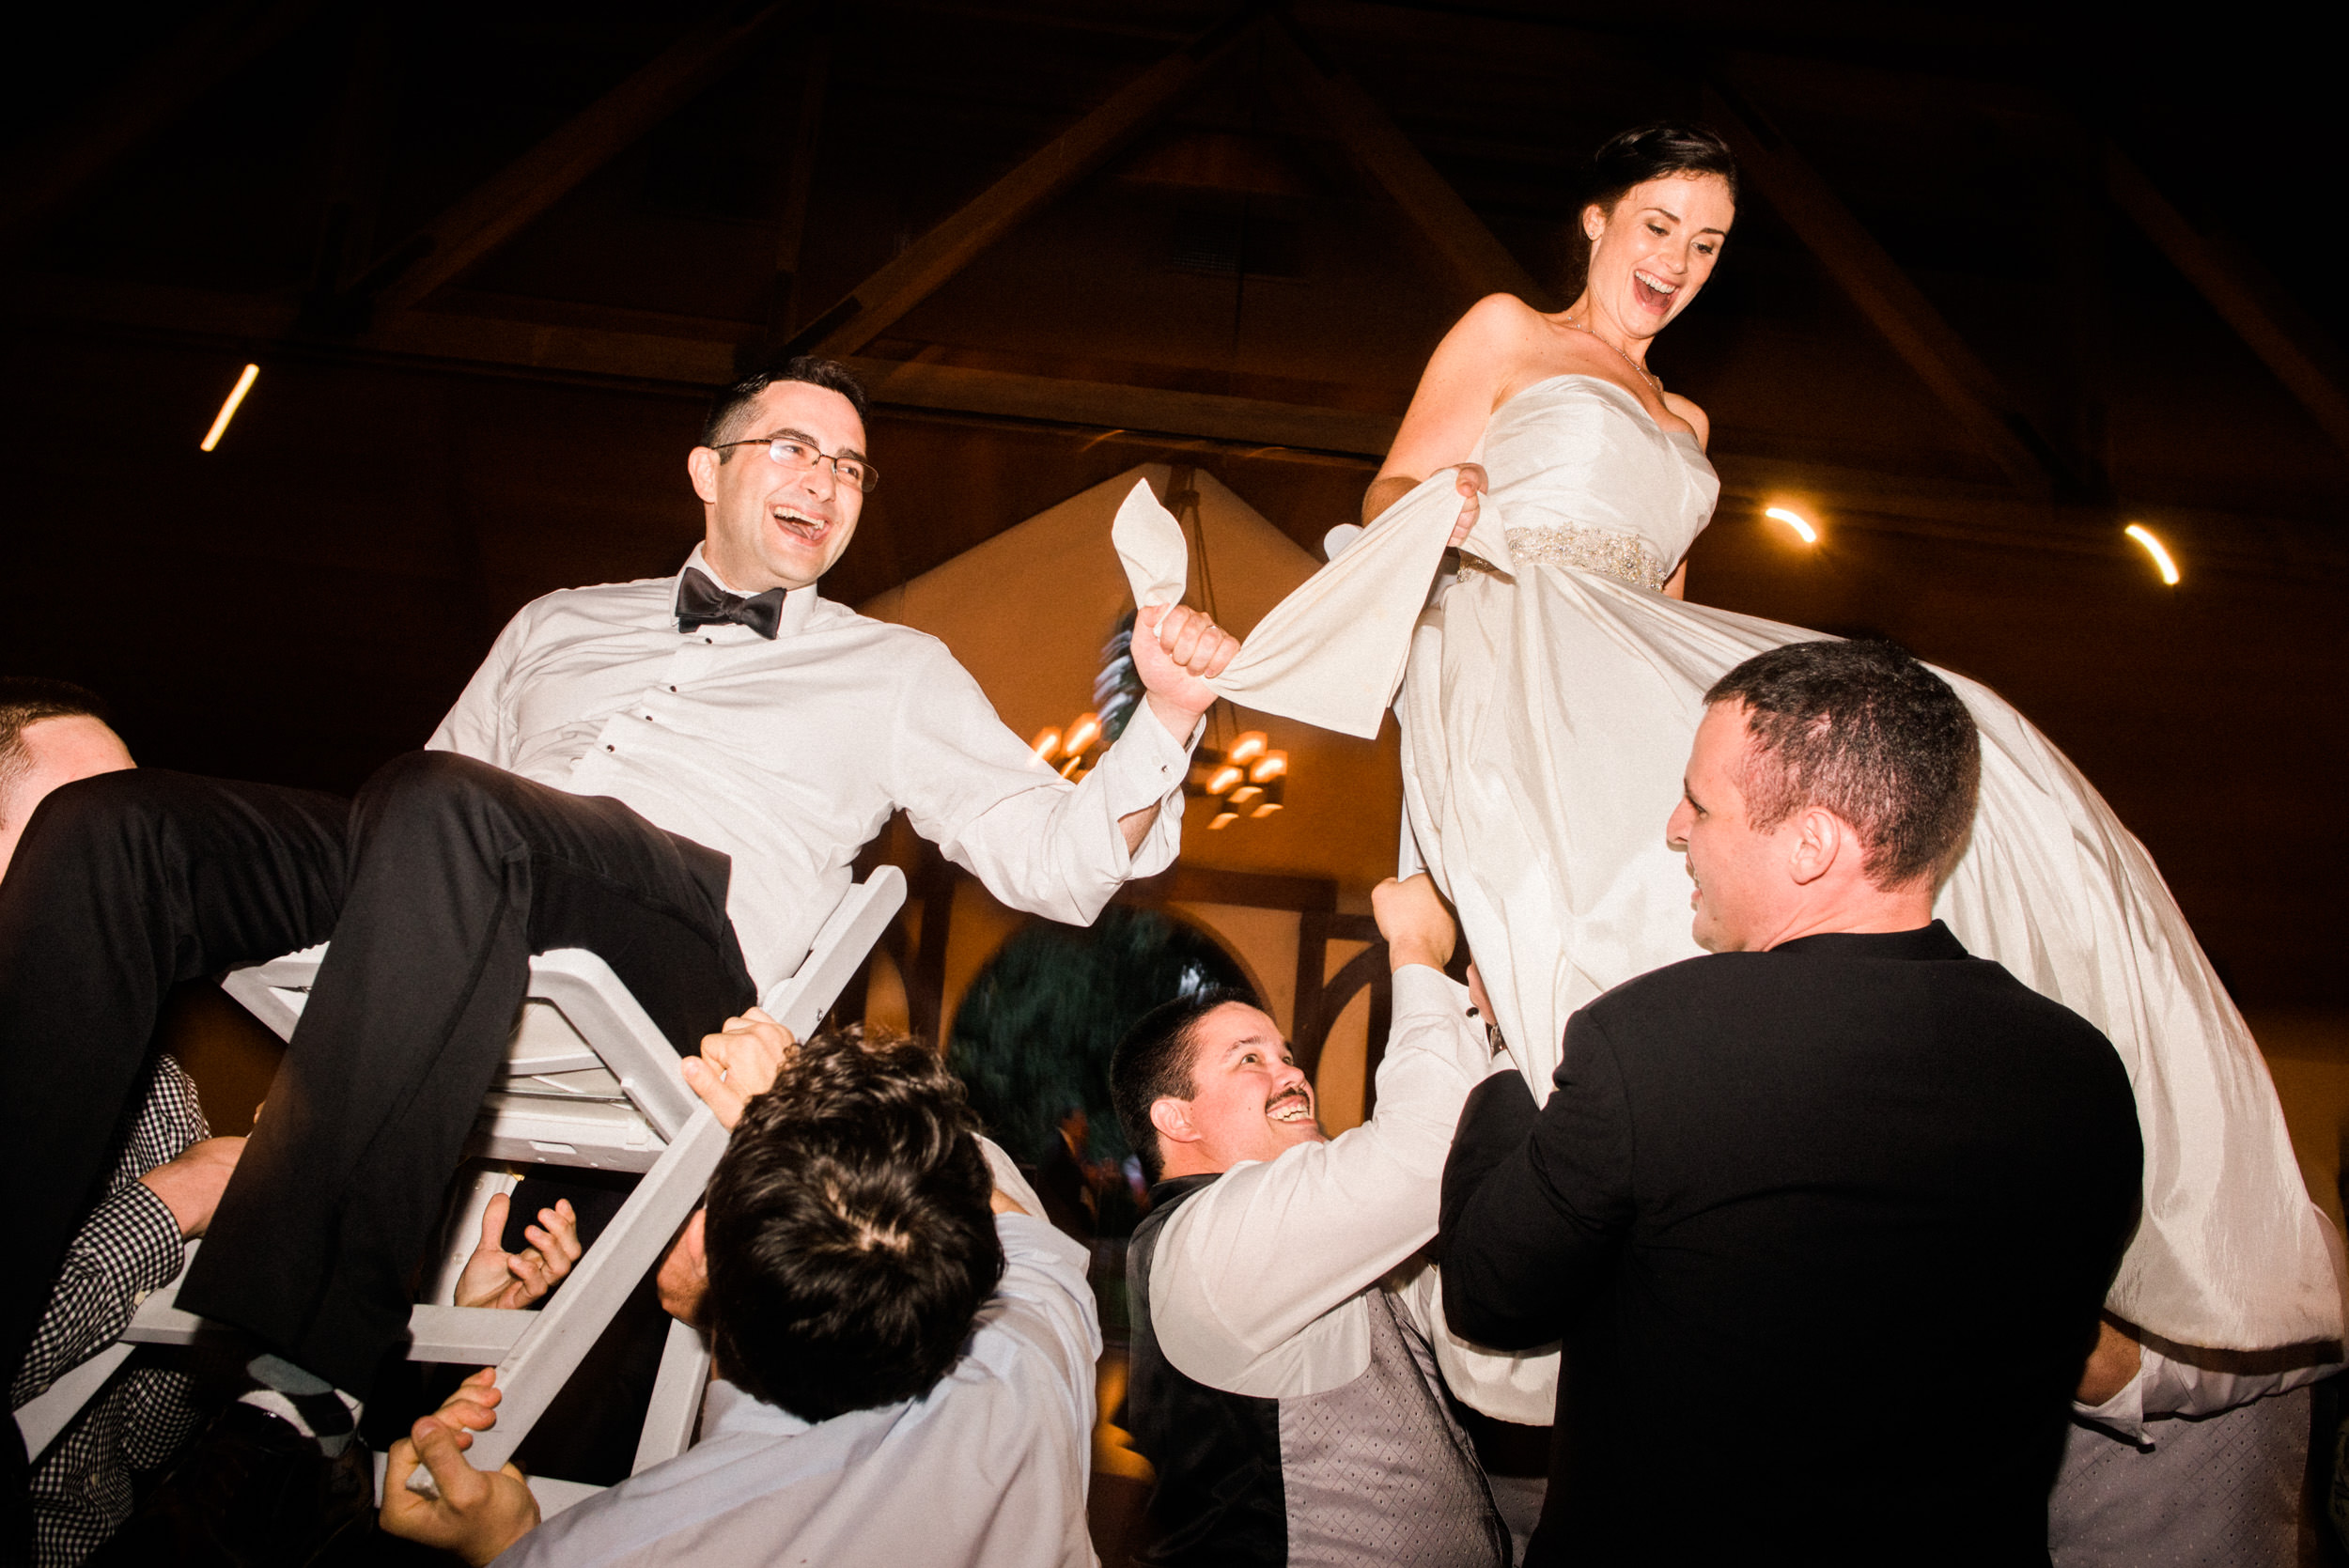 Bride and groom in traditional hora at Charles Krug Winery St. Helena